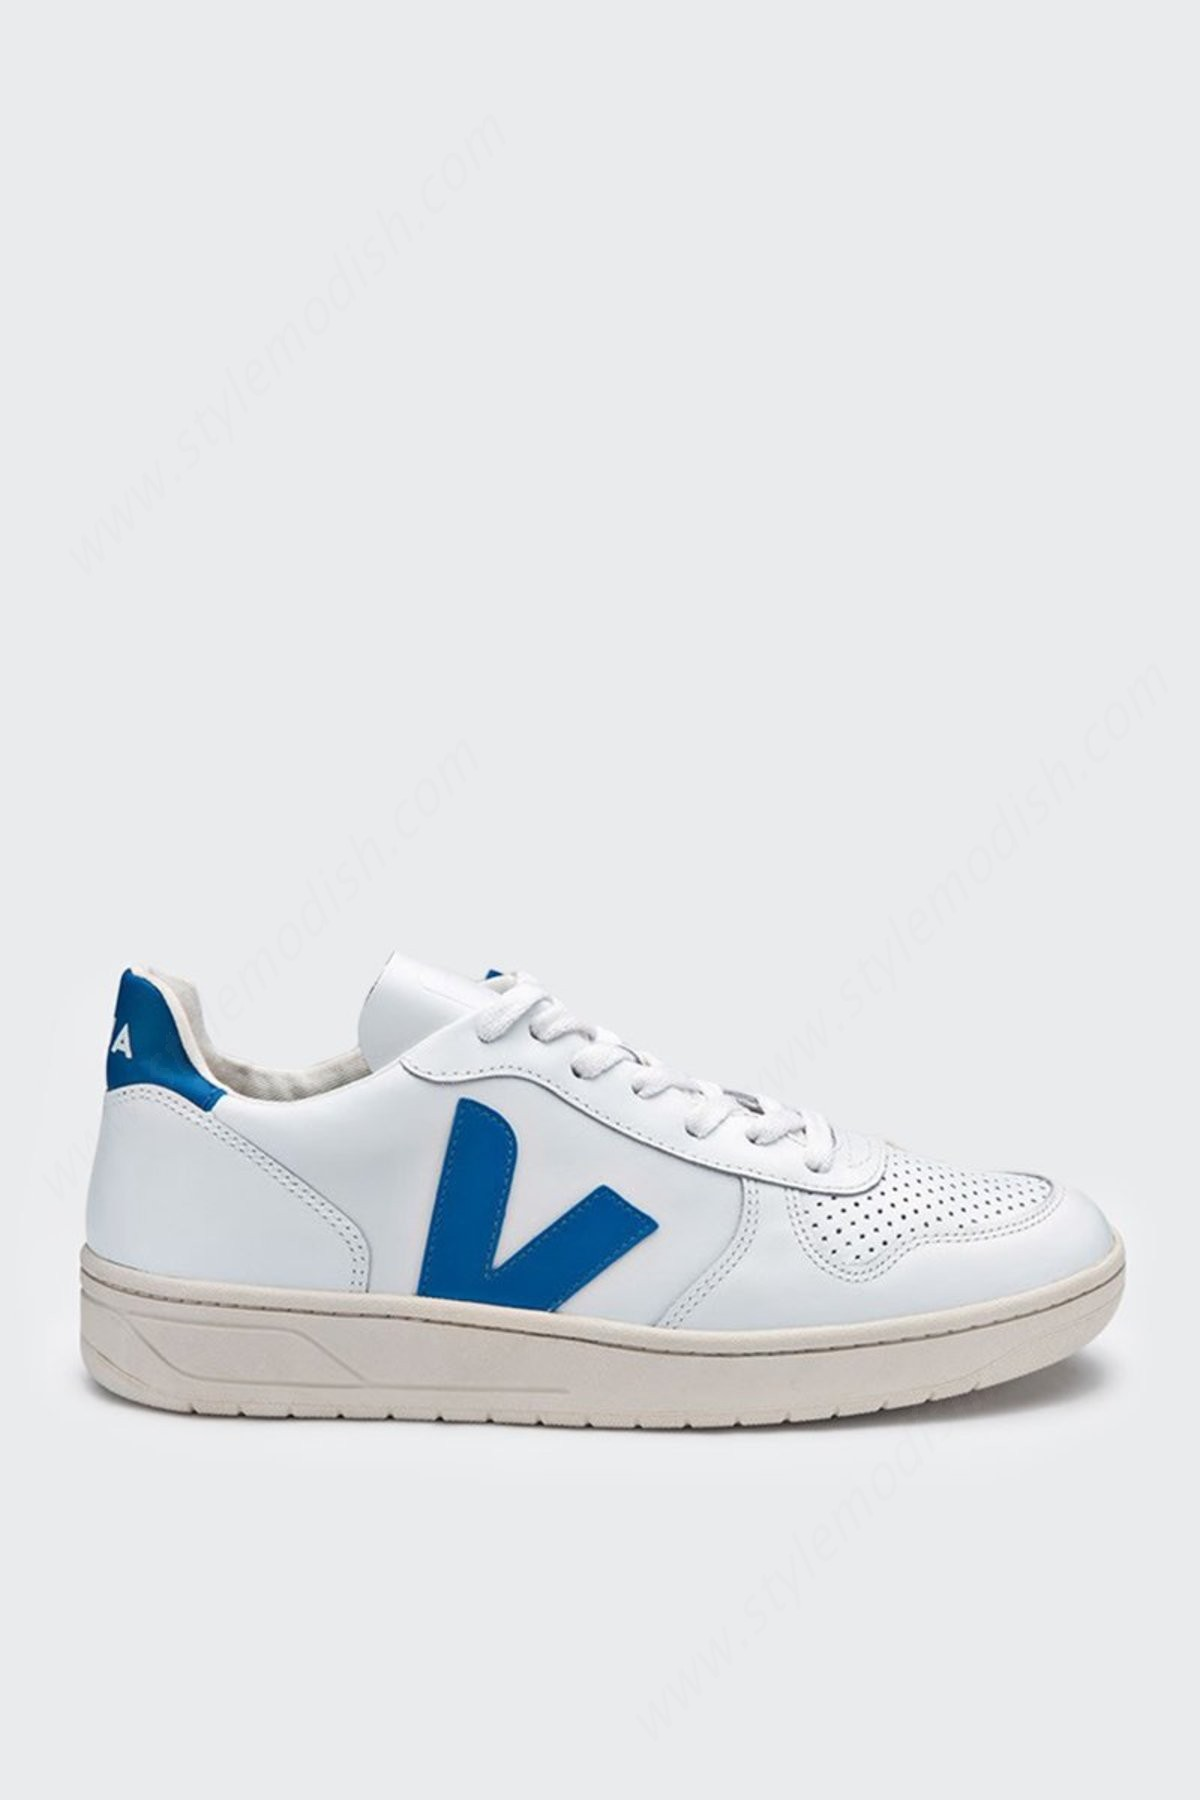 Womens's Unisex Veja V10 Leather Shoes - Extra White/swedish Blue - -0